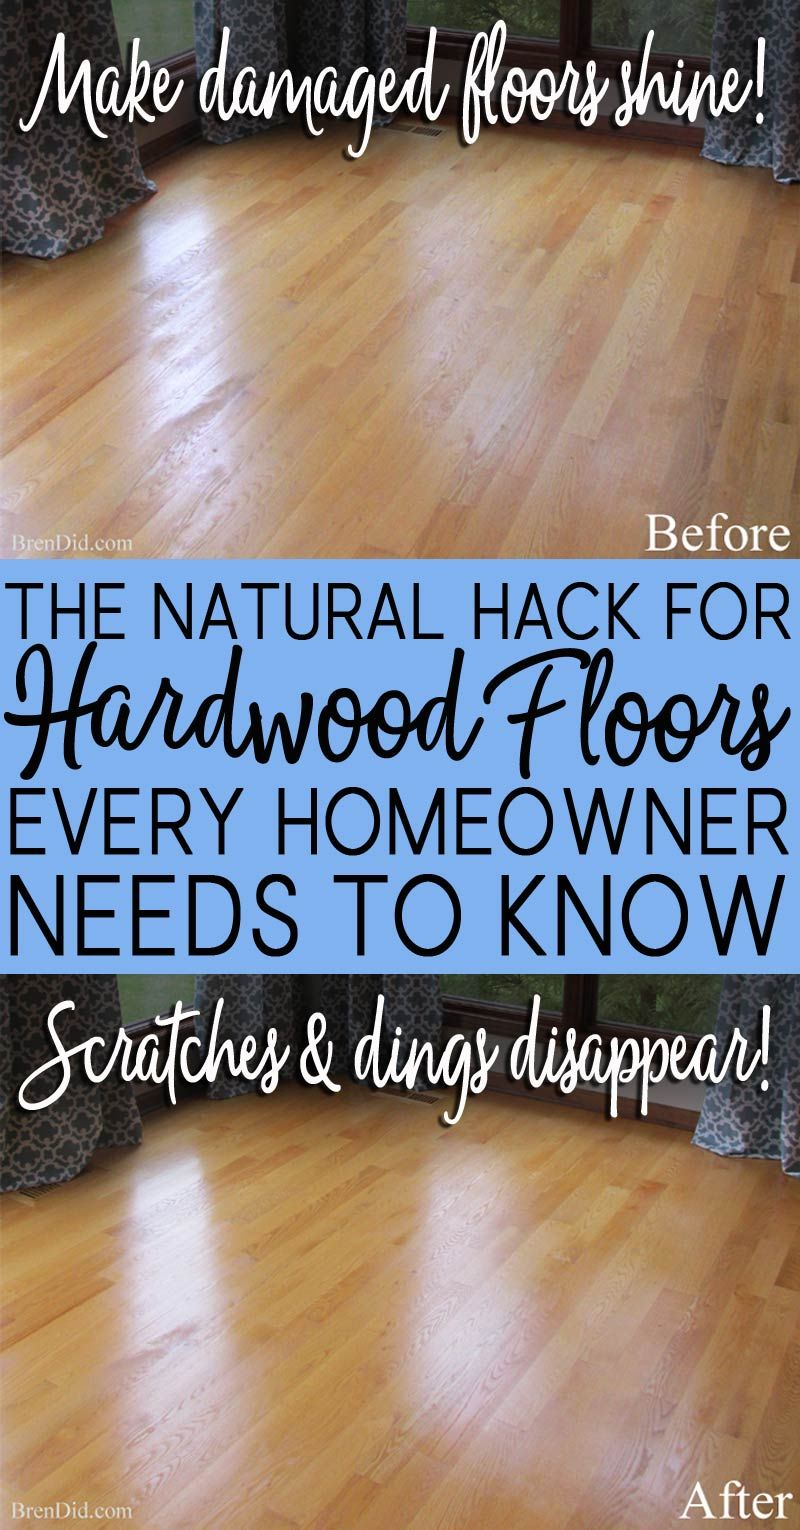 the natural hack for restoring hardwood floors | cleaning and natural